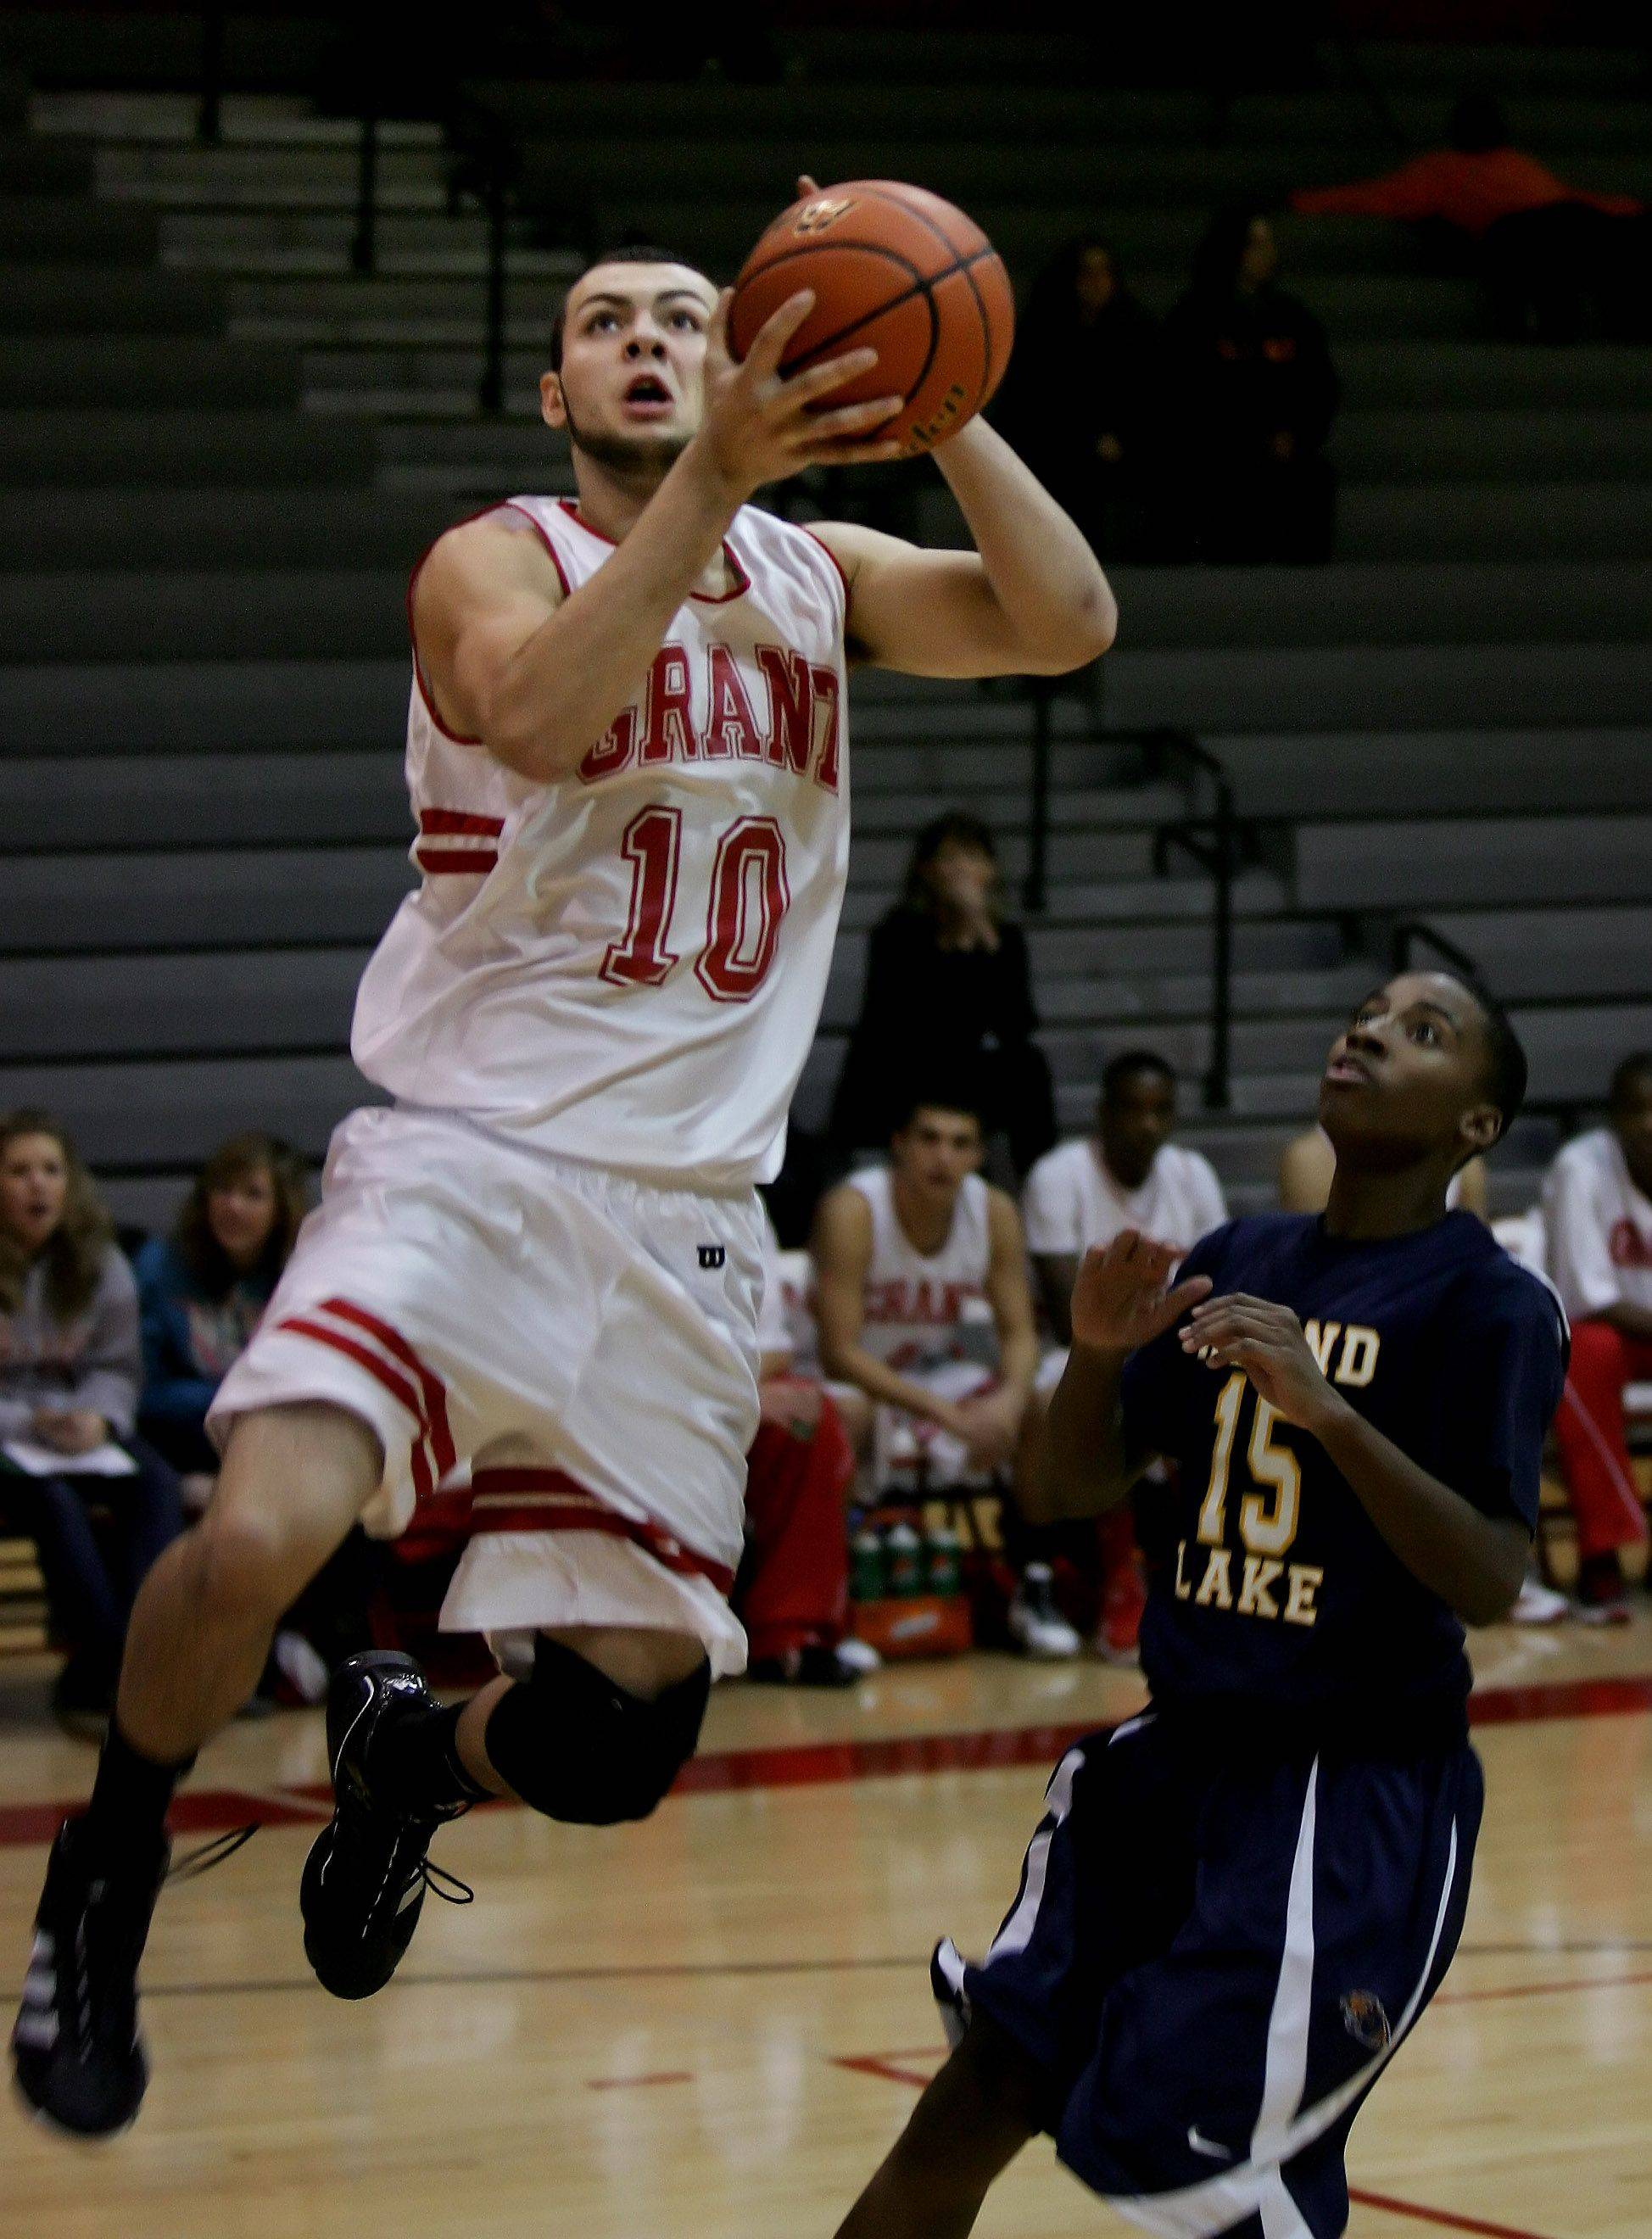 Grant forward Jerry Gaylor drives past Round Lake guard Teandre Brown for a layup.